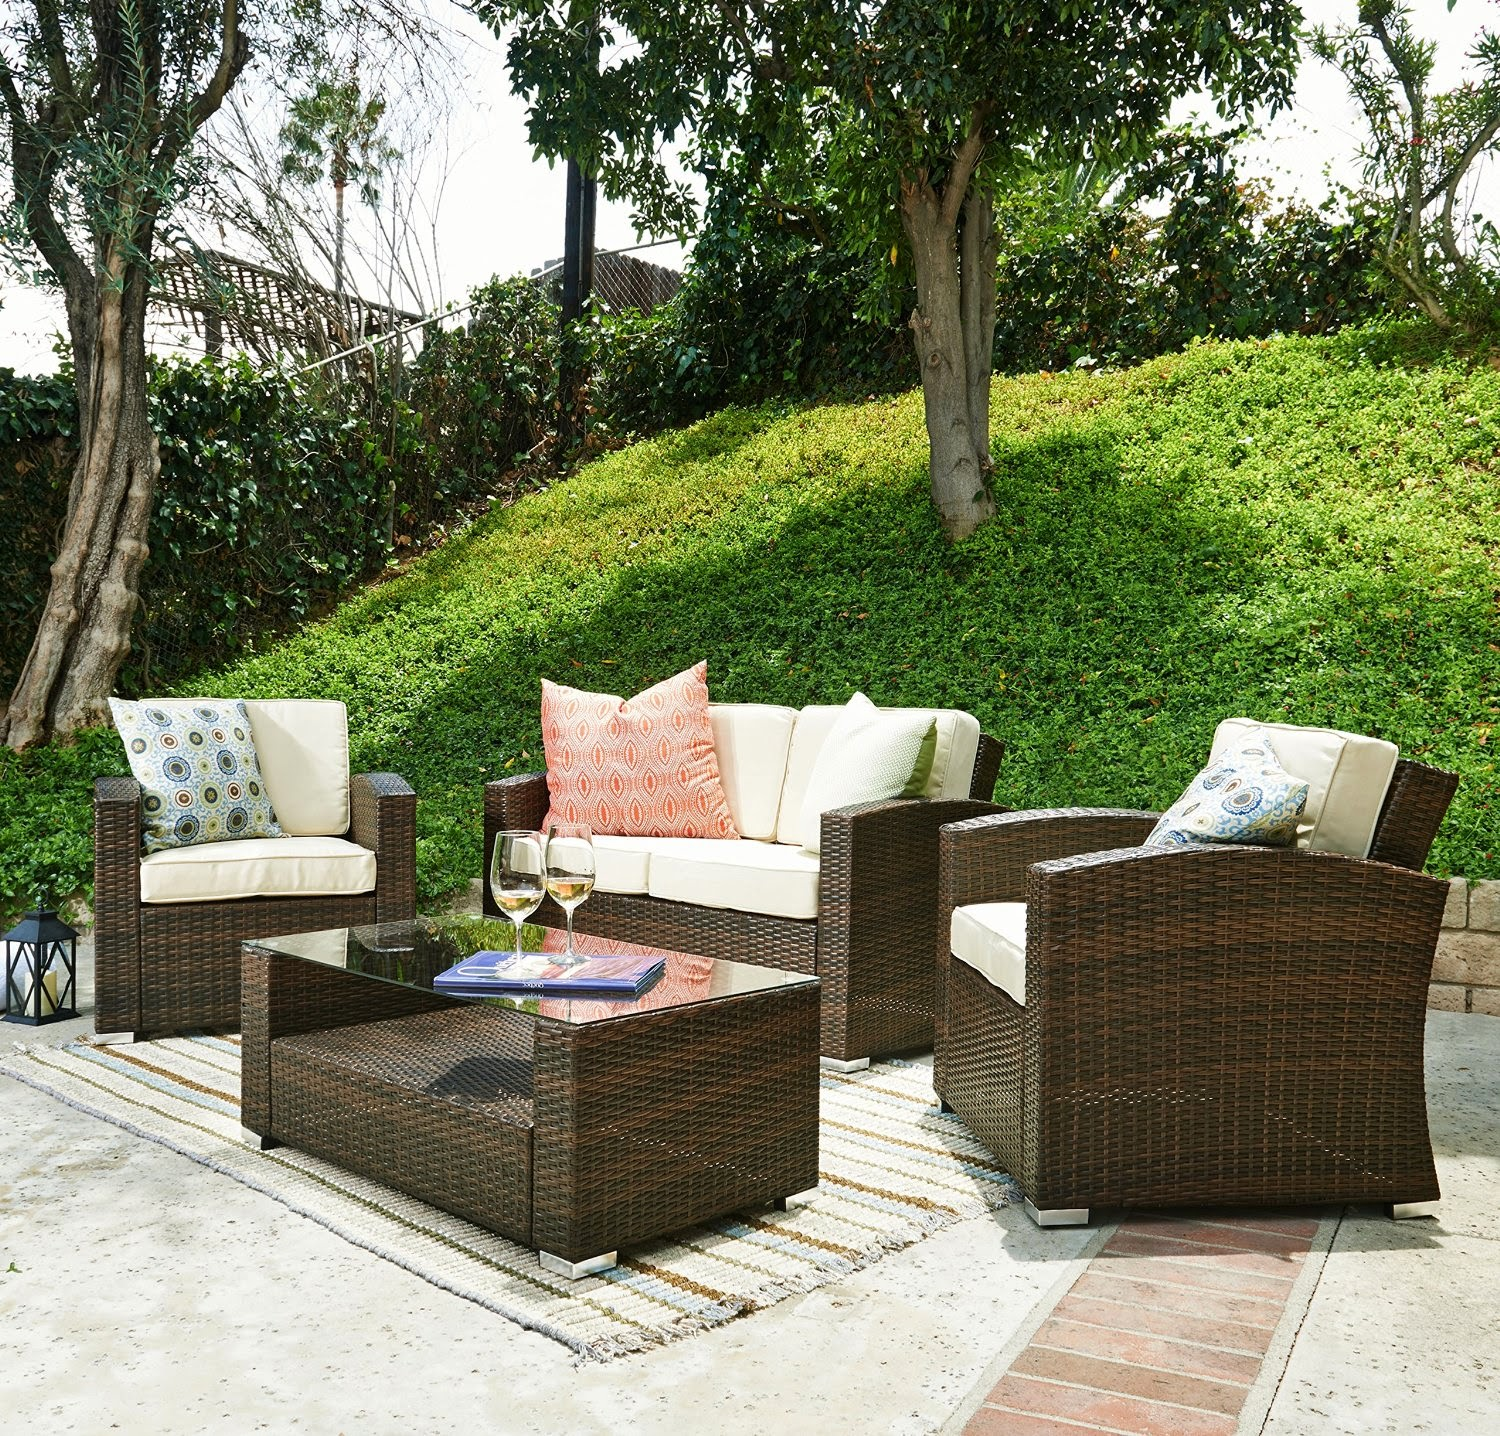 discount special sale off 58 for outdoor furniture sofa 4pcs luxury patio set outdoor patio. Black Bedroom Furniture Sets. Home Design Ideas